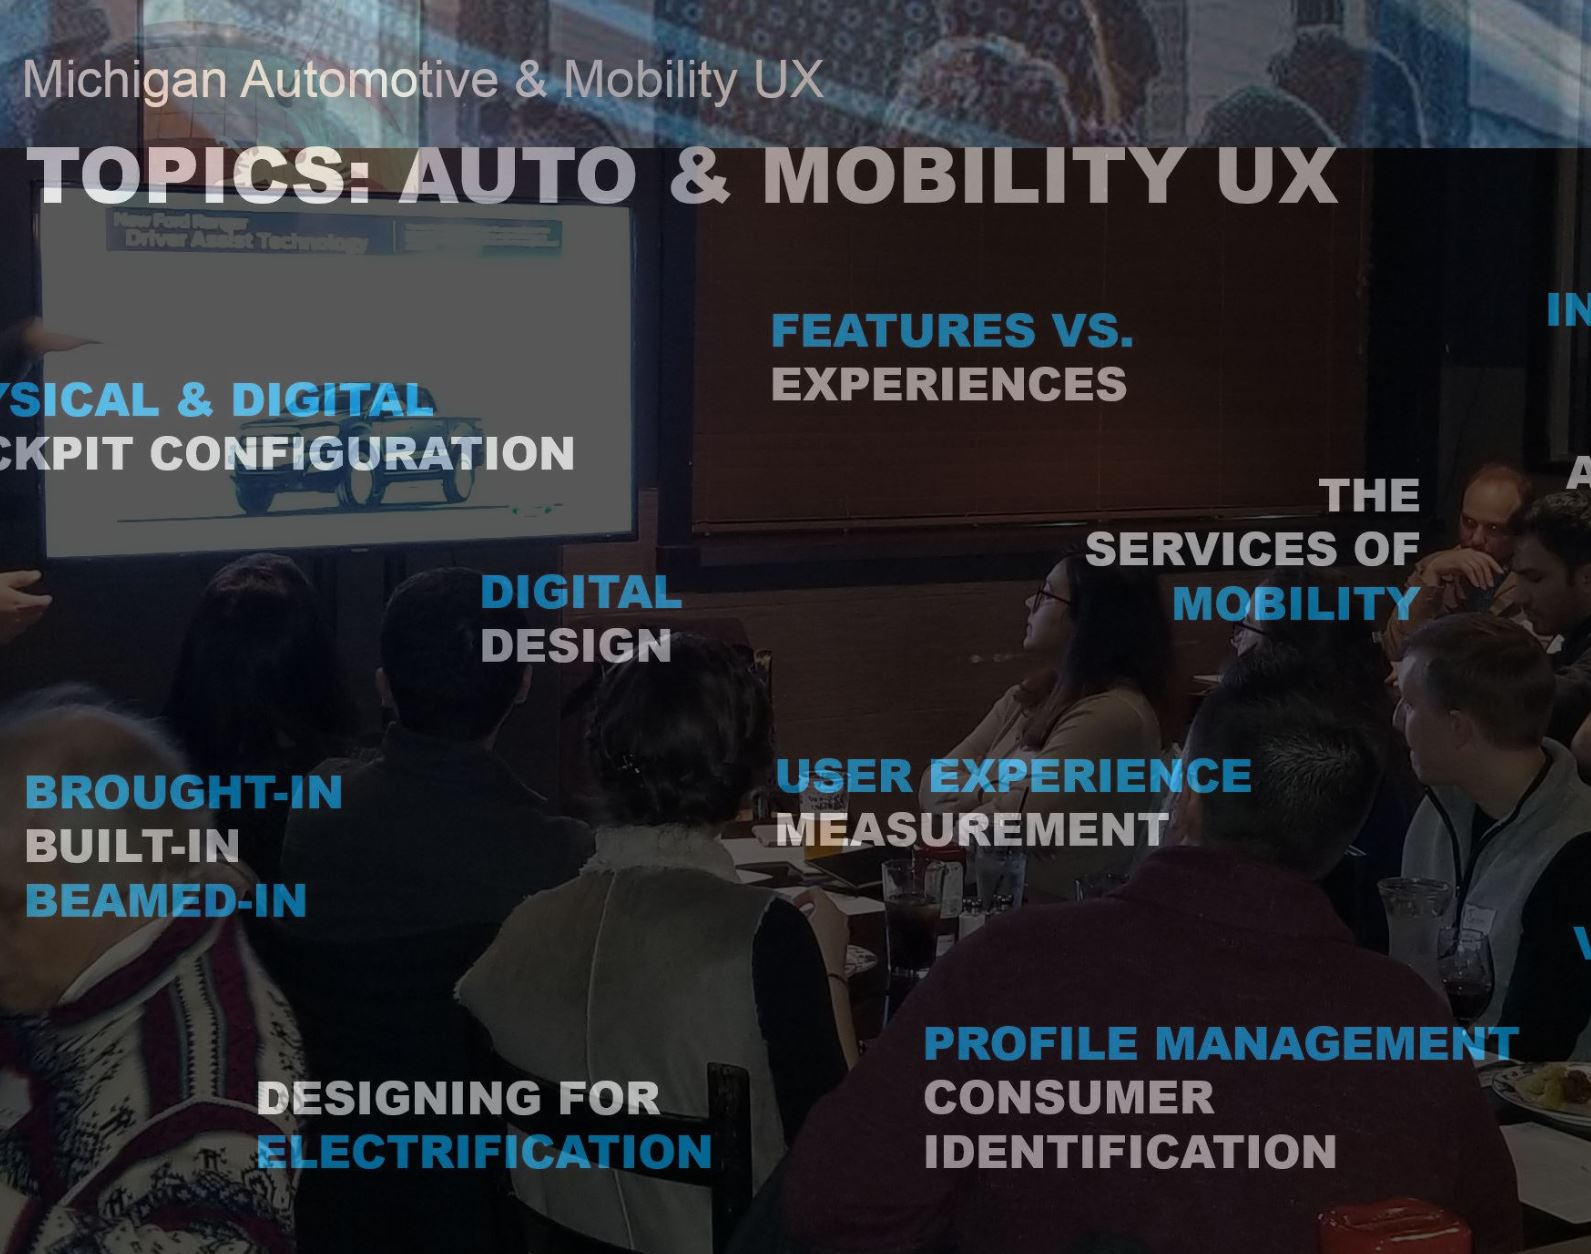 MI Automotive & Mobility UX Group